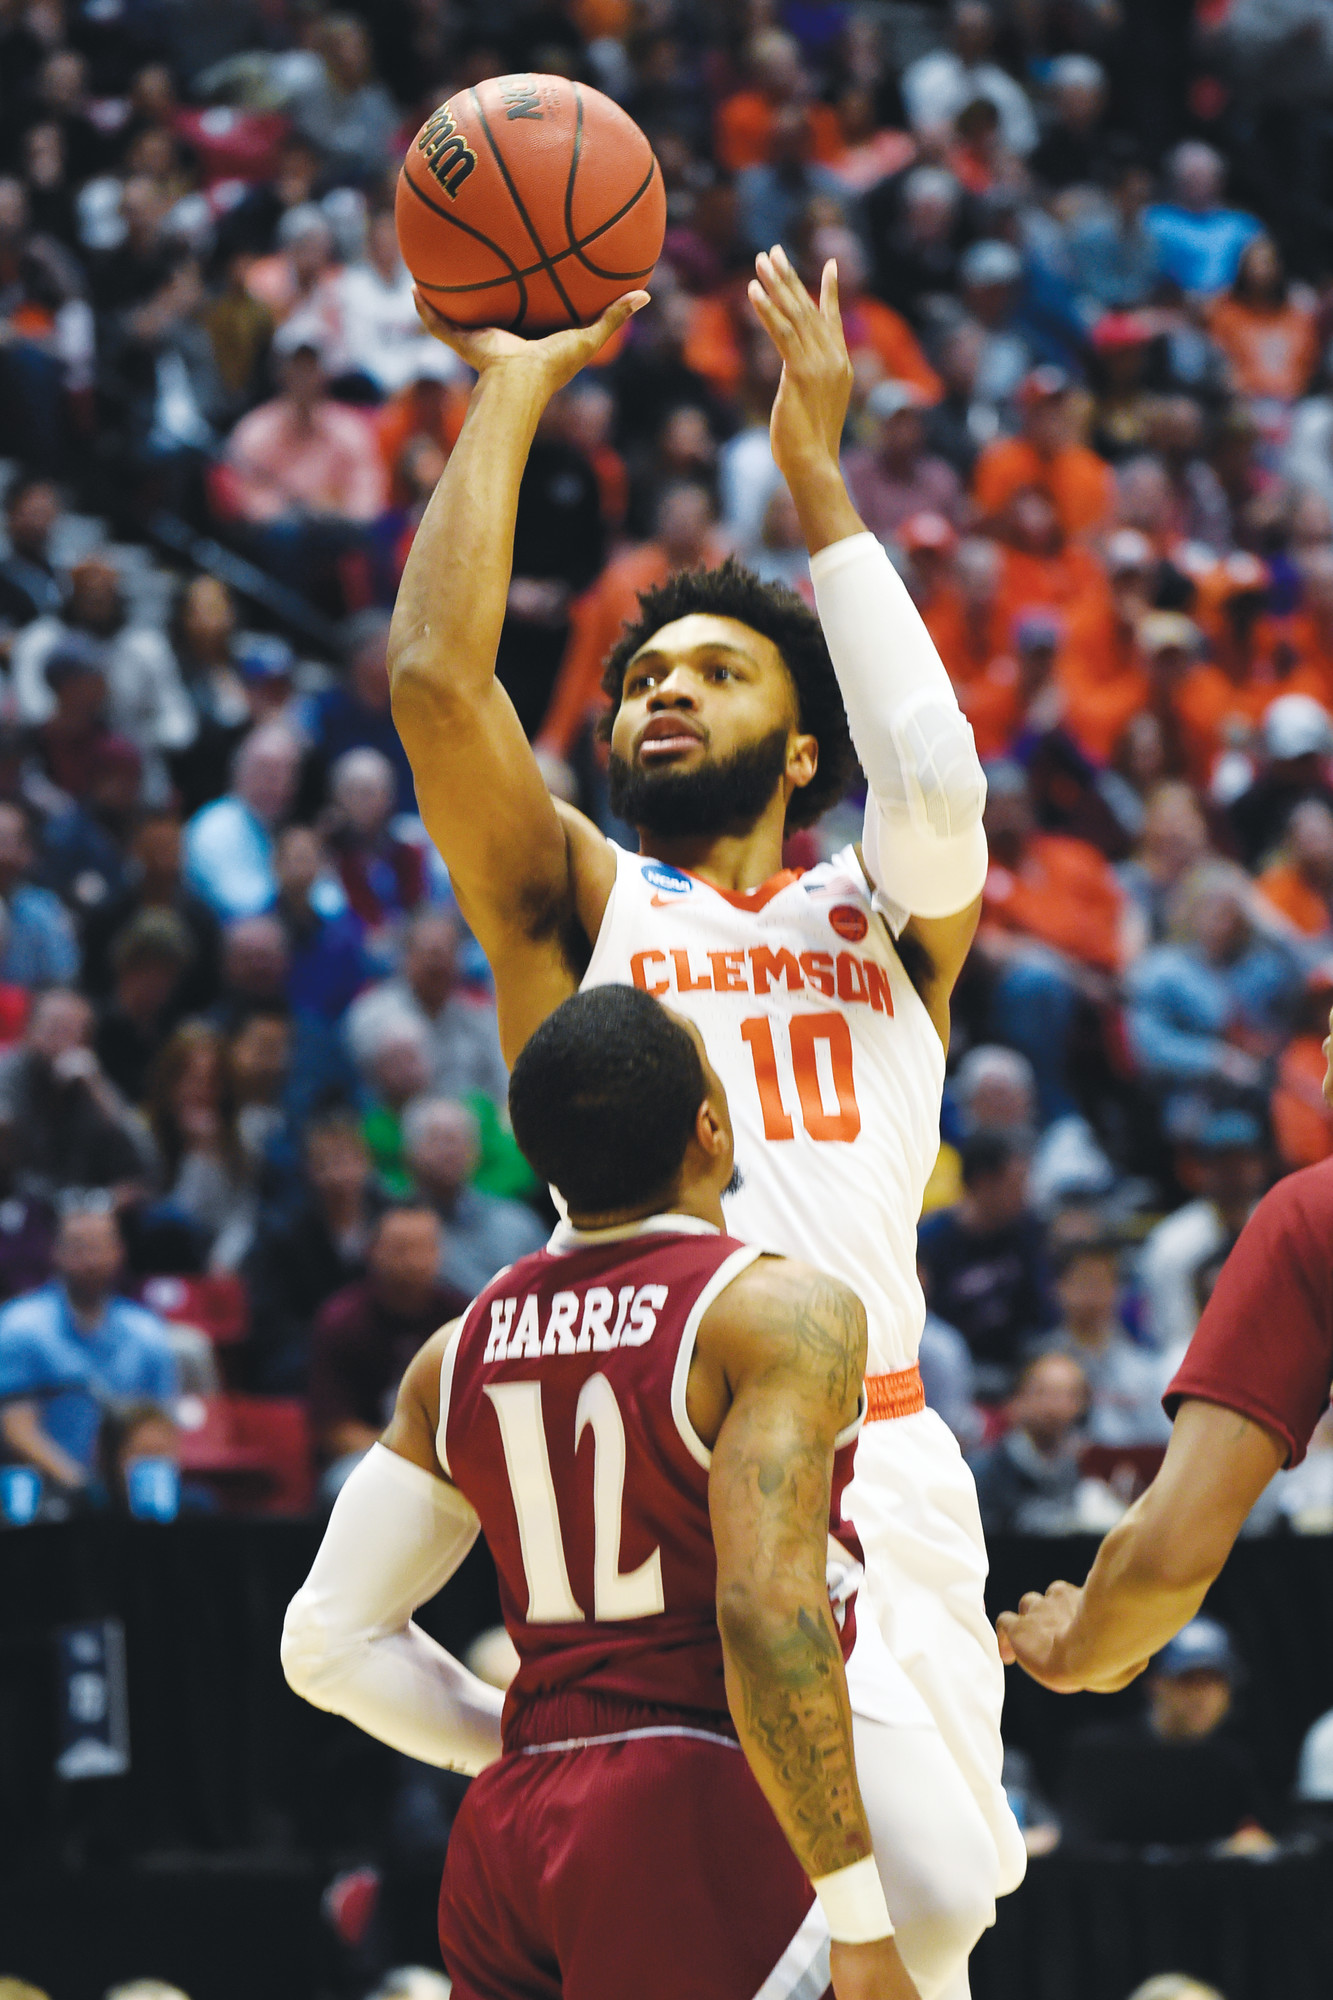 Clemson guard Gabe DeVoe (10) and the rest of the Tigers will be taking on Kansas in a Sweet 16 contest of the NCAA tournament on Friday.